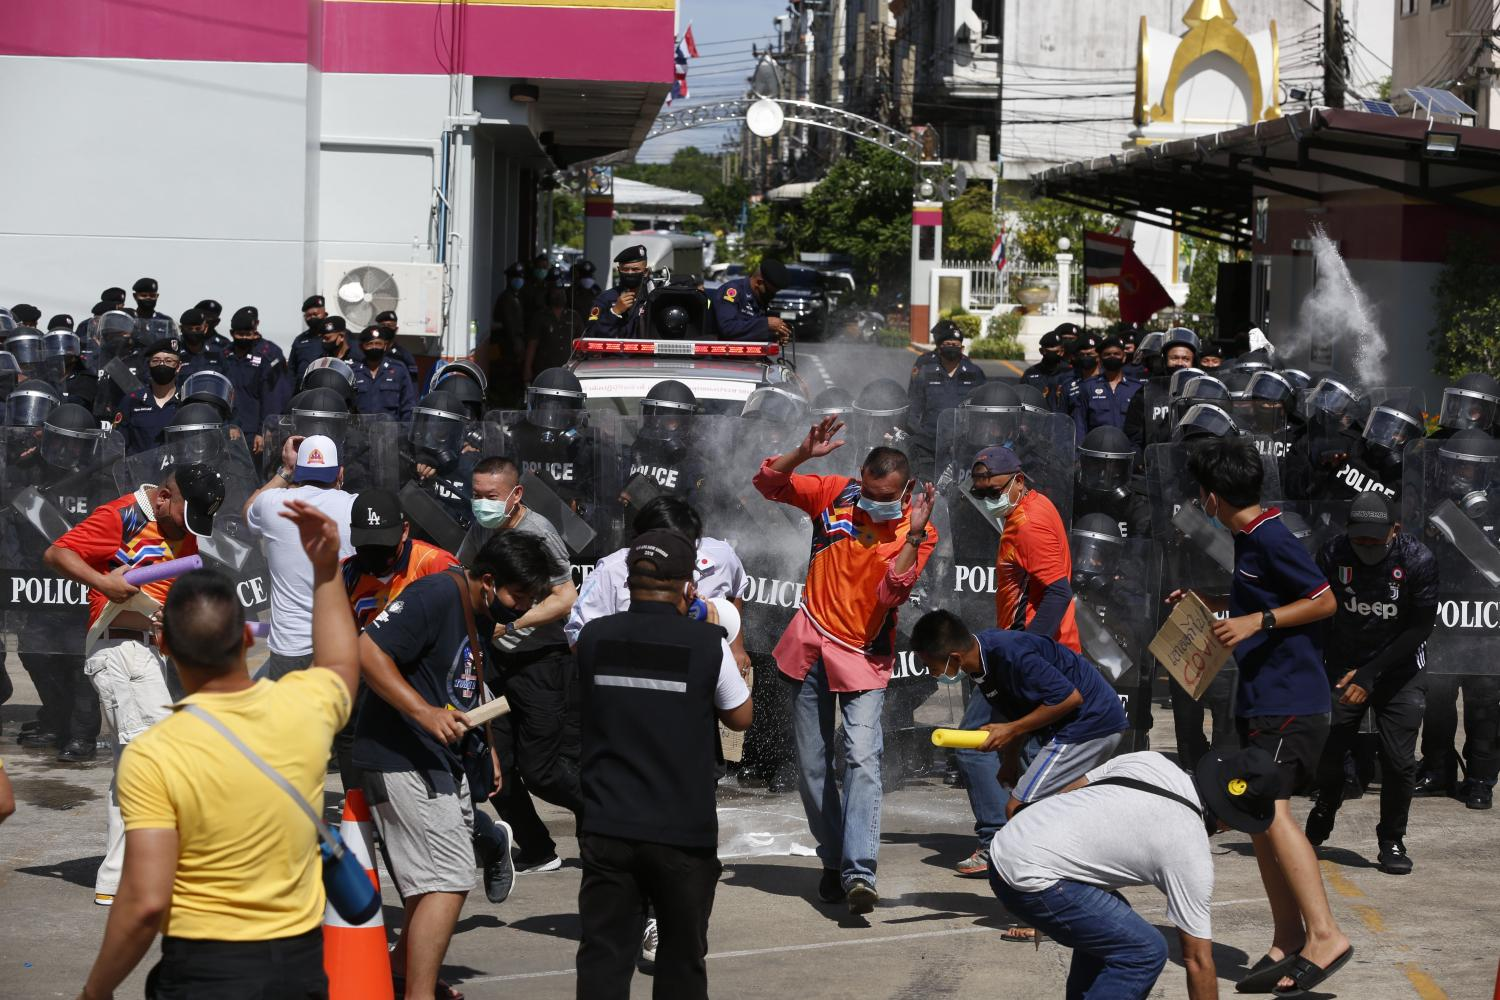 Metropolitan Police Division 8 conduct a crowd control drill at its headquarters in Bangkok's Chom Thong district on Wednesday. The exercise was carried out amid the easing of lockdown and Covid-19 restrictions that may soon open the way for public gatherings and protests.(Photo by Pornprom Satrabhaya)